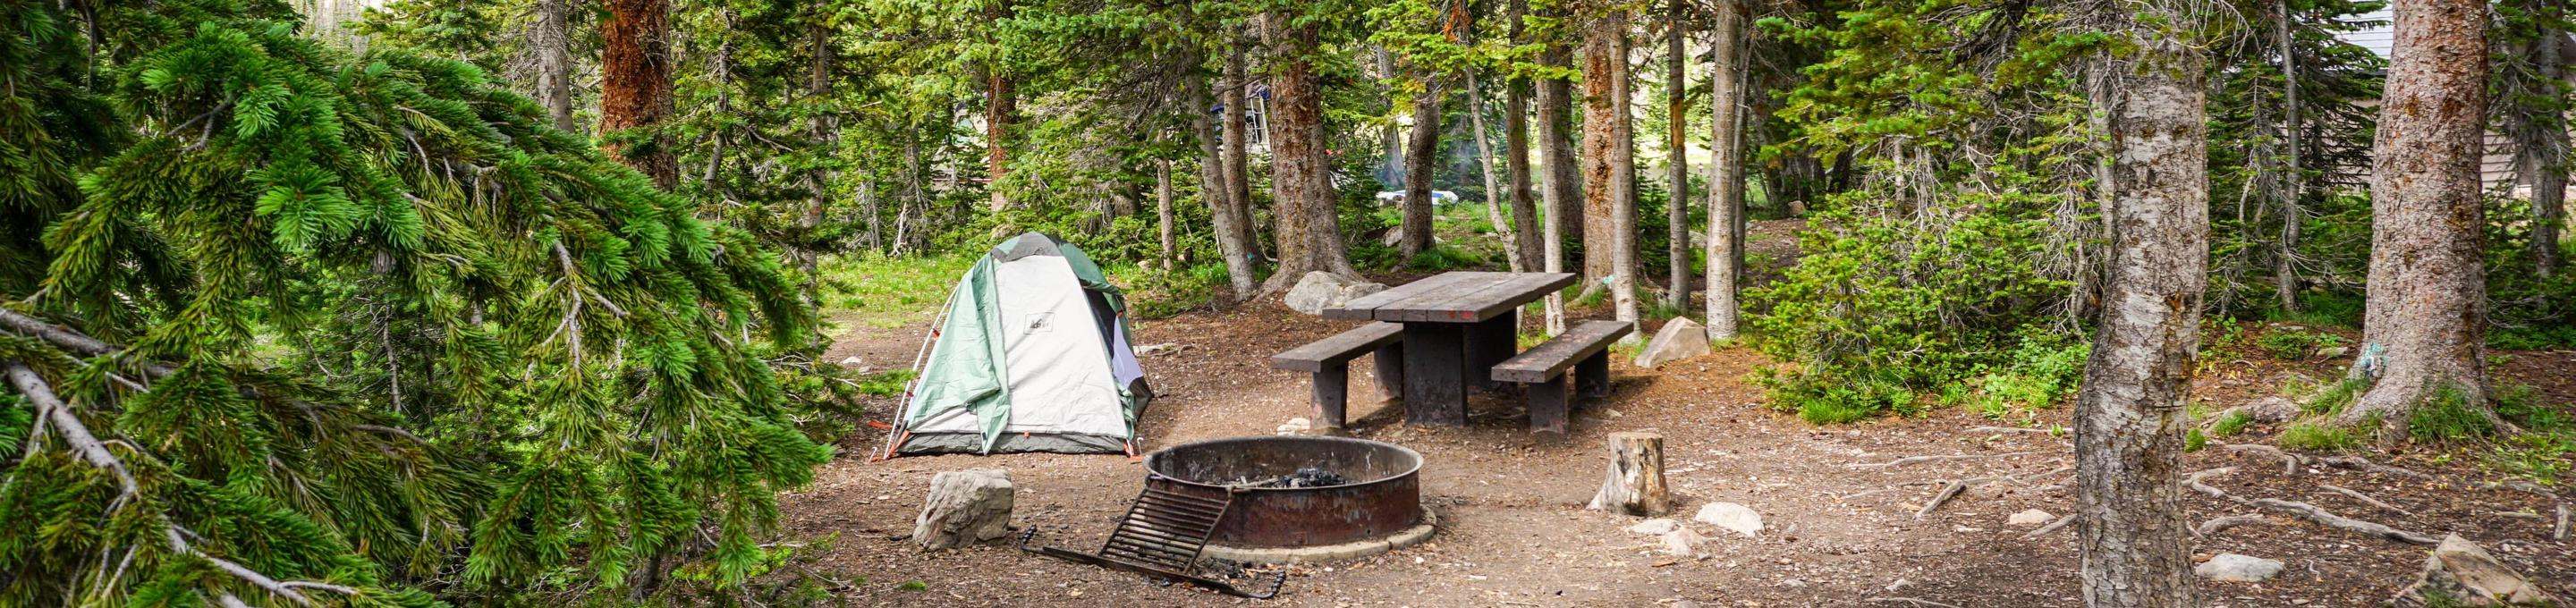 Moosehorn Campground - 005